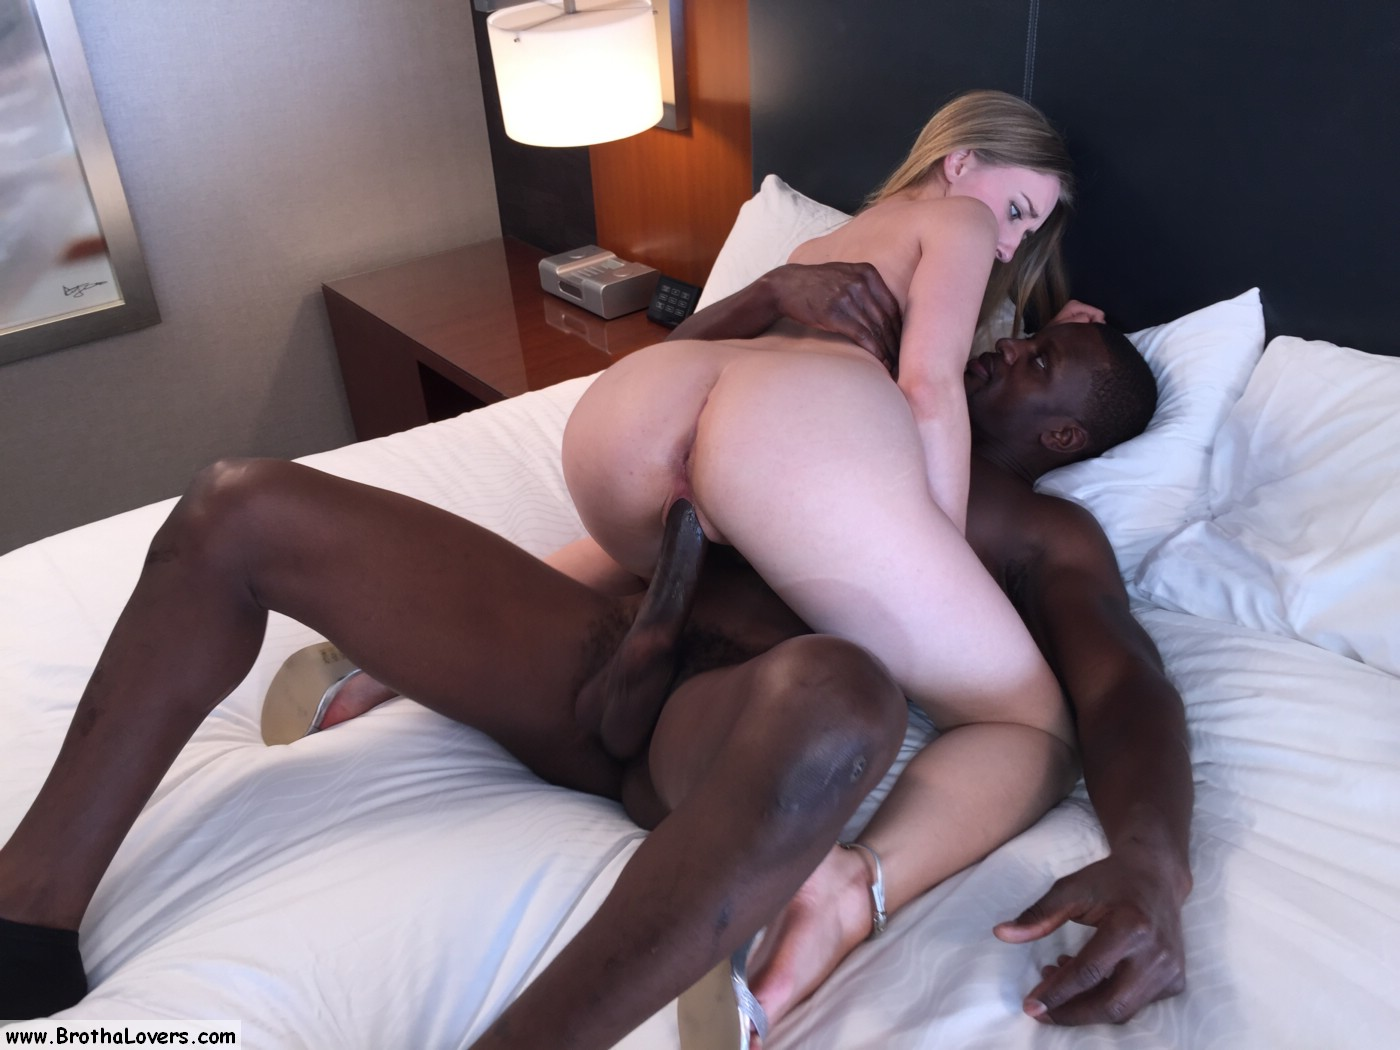 Wcp club big black cock pounds madison rose juicy booty 8